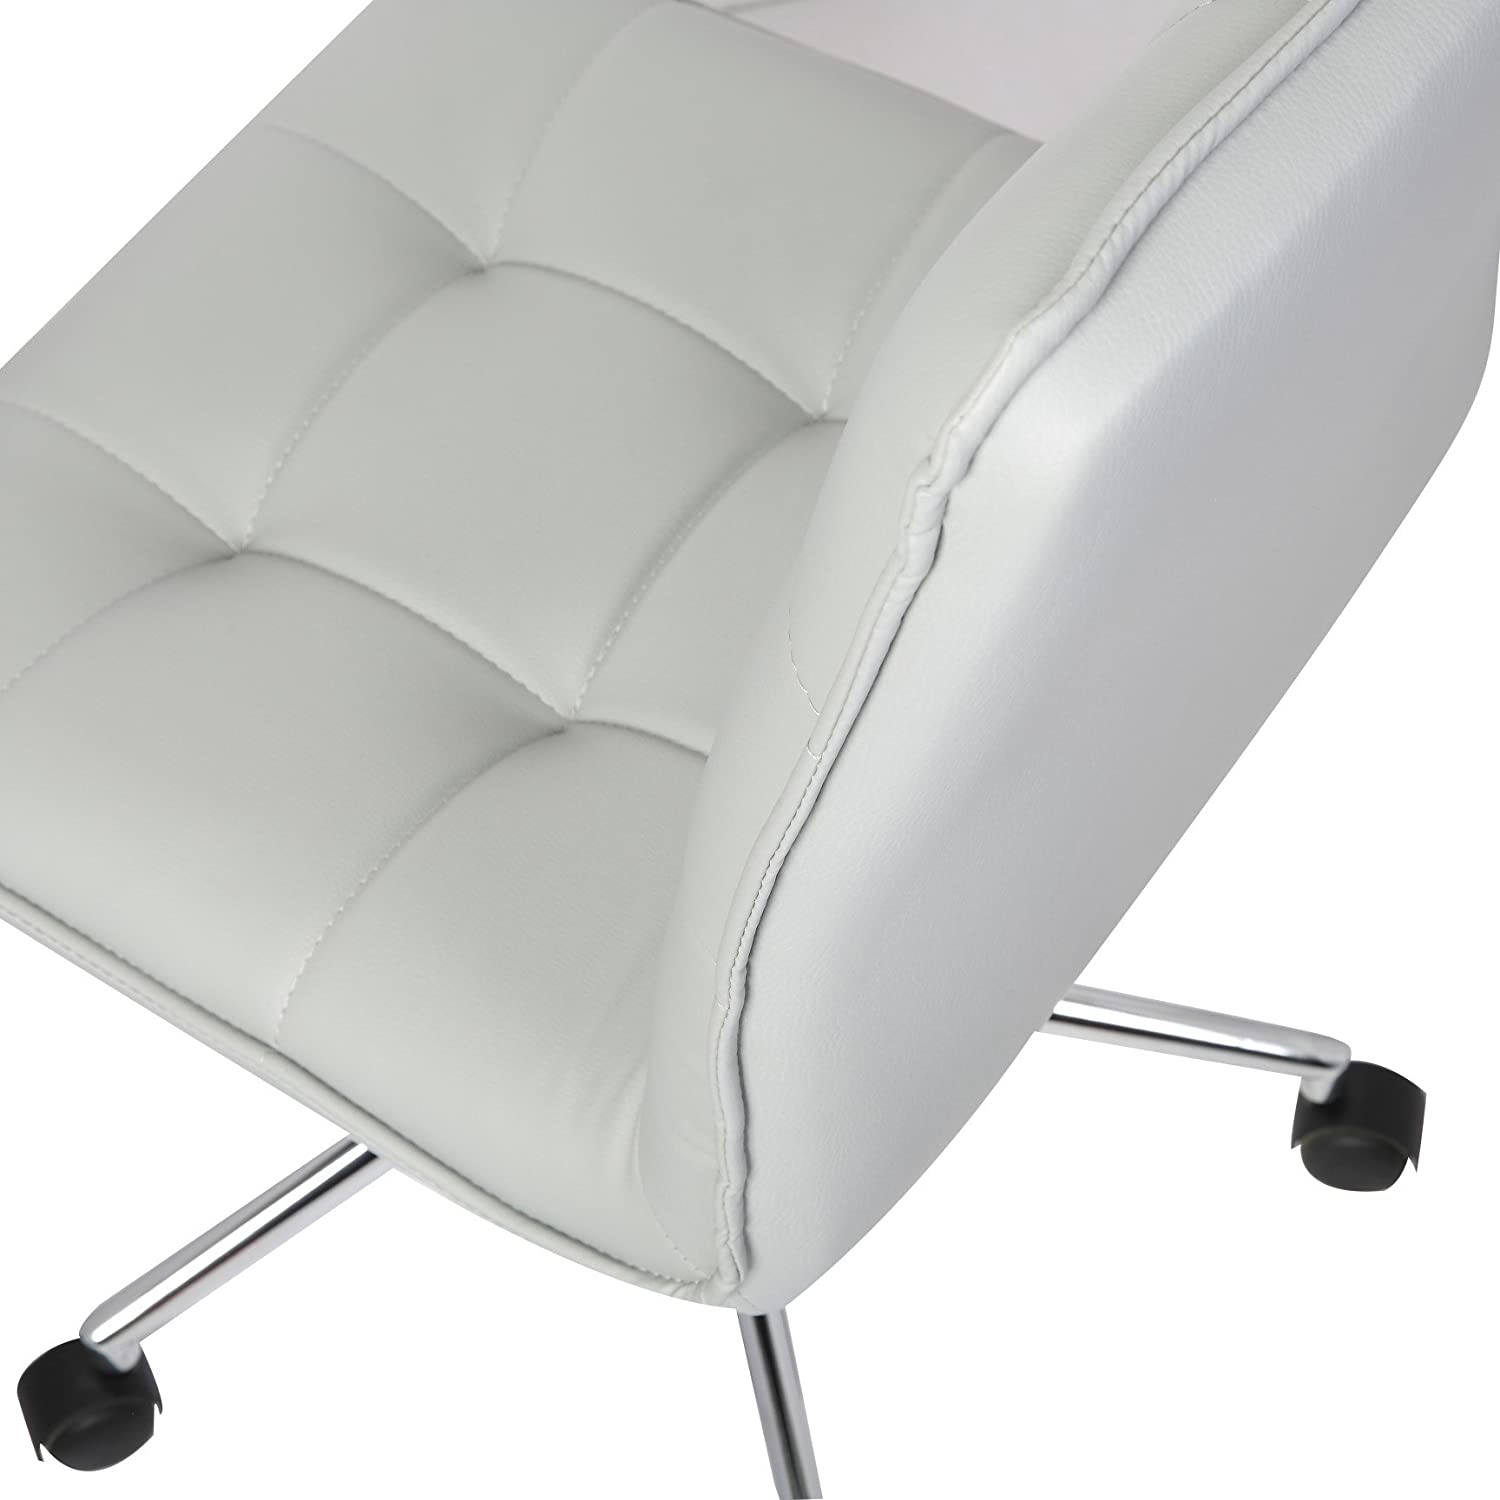 Height Adjustable Easy Glide Caster Wheels Ultra-Thick Padding Size; 24 x 20 x 39 inch 360-degree Swivel Porthos Home Leona Office Chair Unique Luxury Home Office Chairs